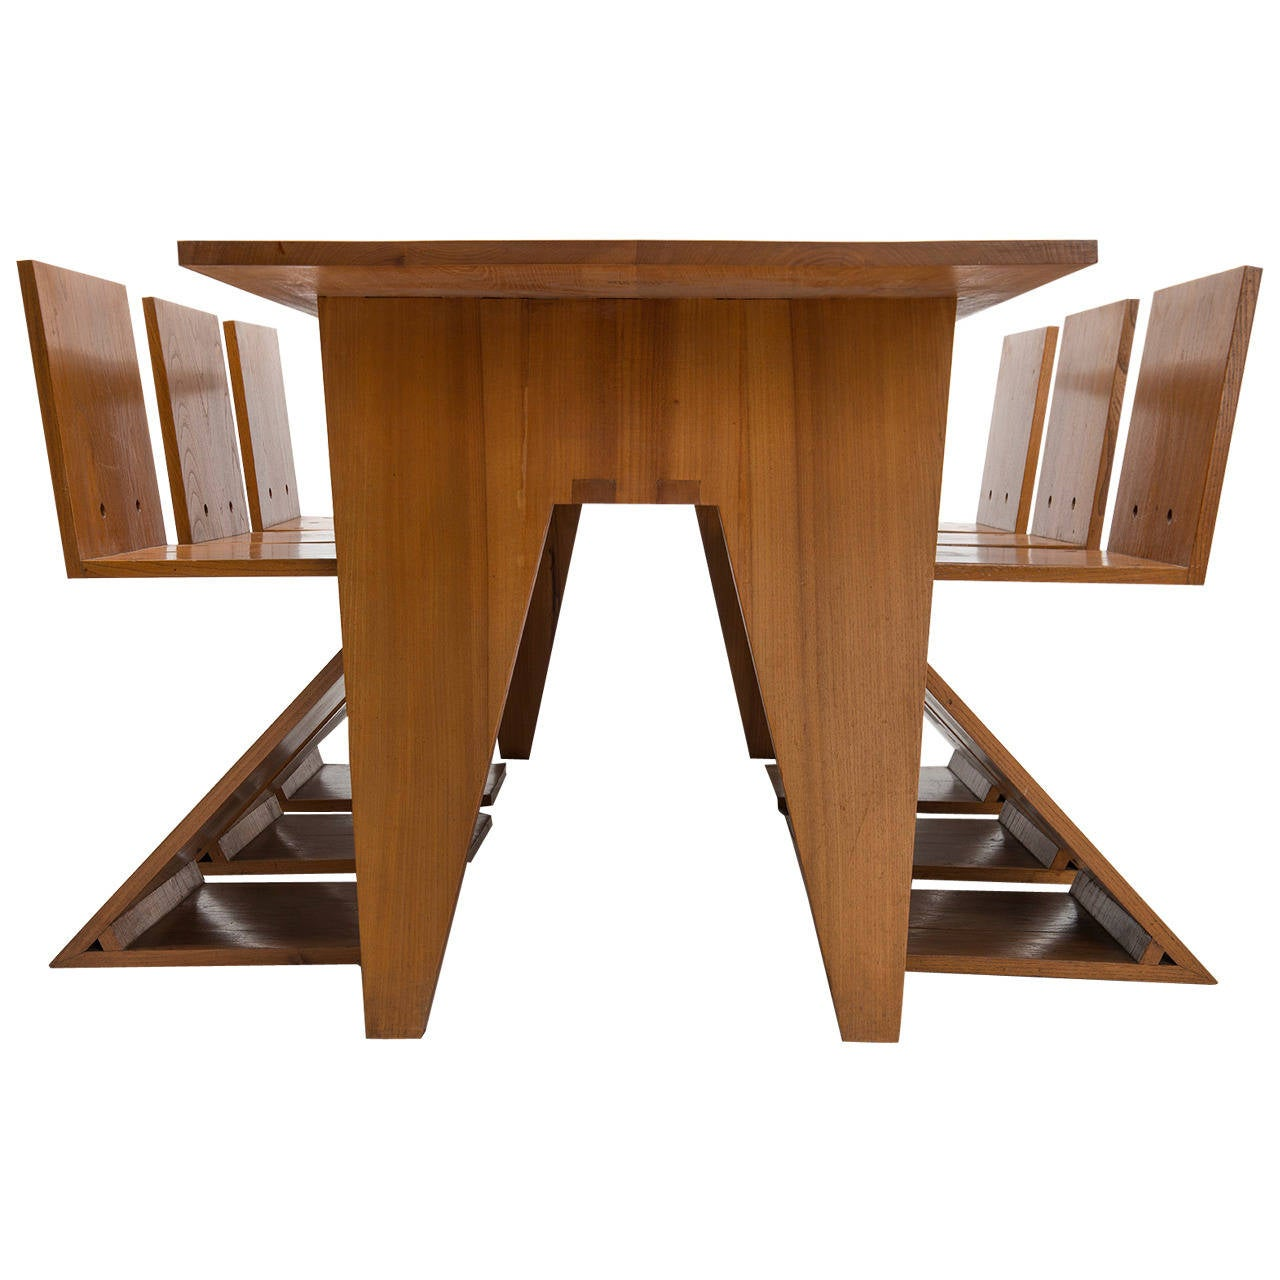 Dining Table With Three Extension Leaves And Six Matching: Zigzag Table With Six Matching Zigzag Chairs For Sale At